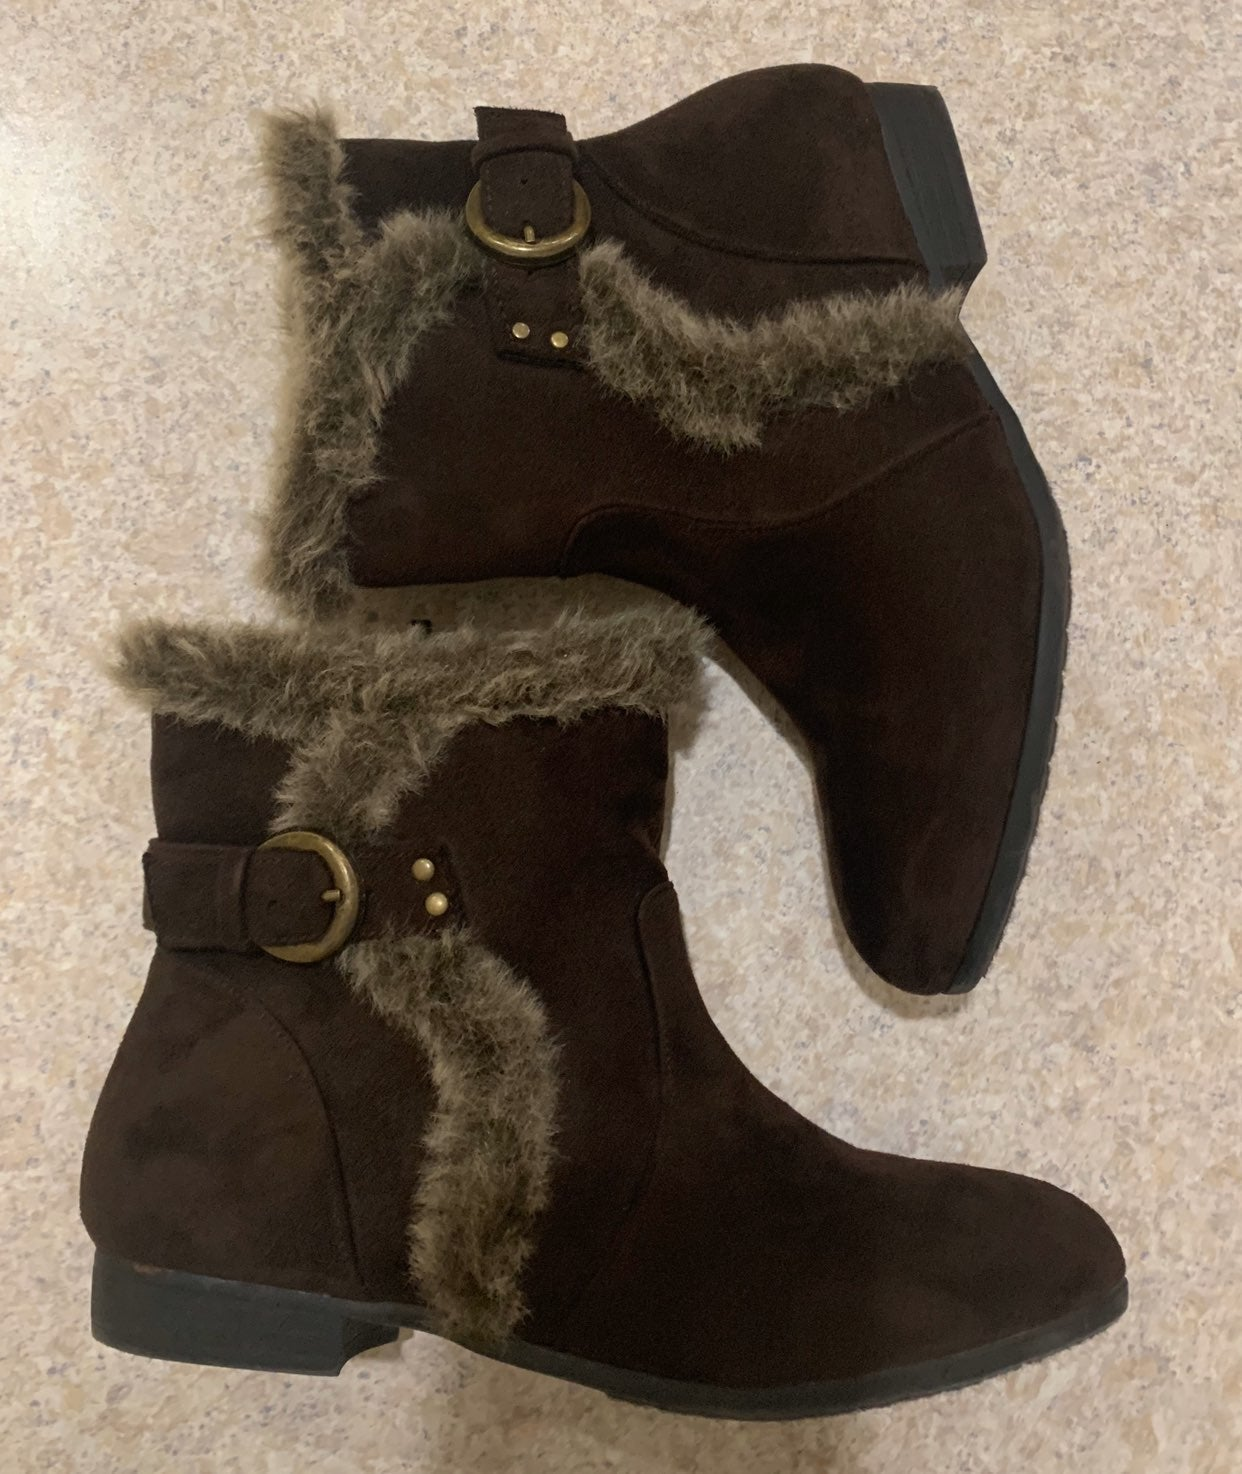 Bay studio suede ankle boots faux fur